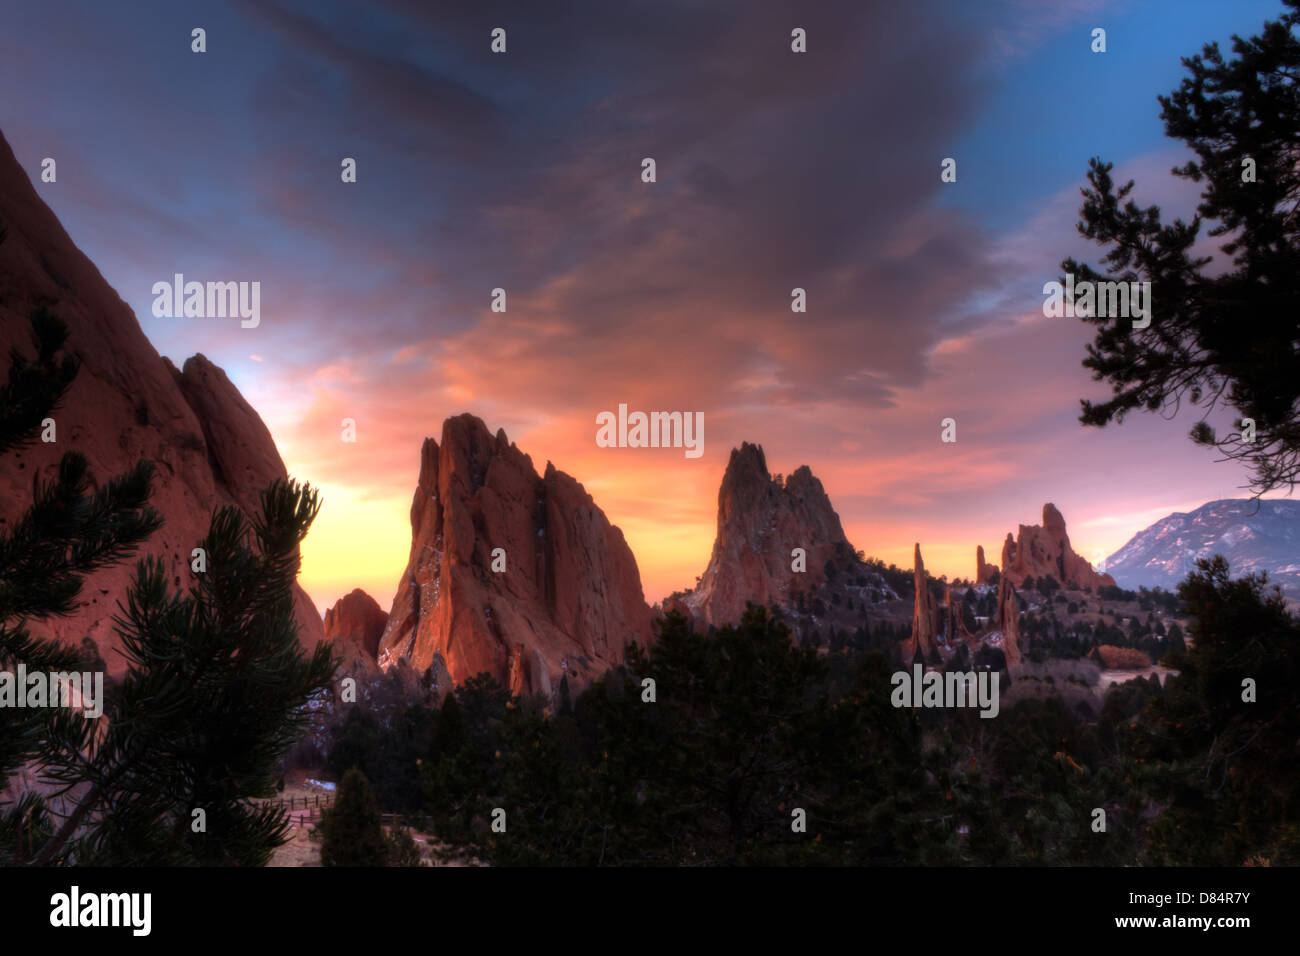 Beautiful HDR image of purple and orange sunrise clouds over red rock formations at Garden of the Gods, Colorado - Stock Image